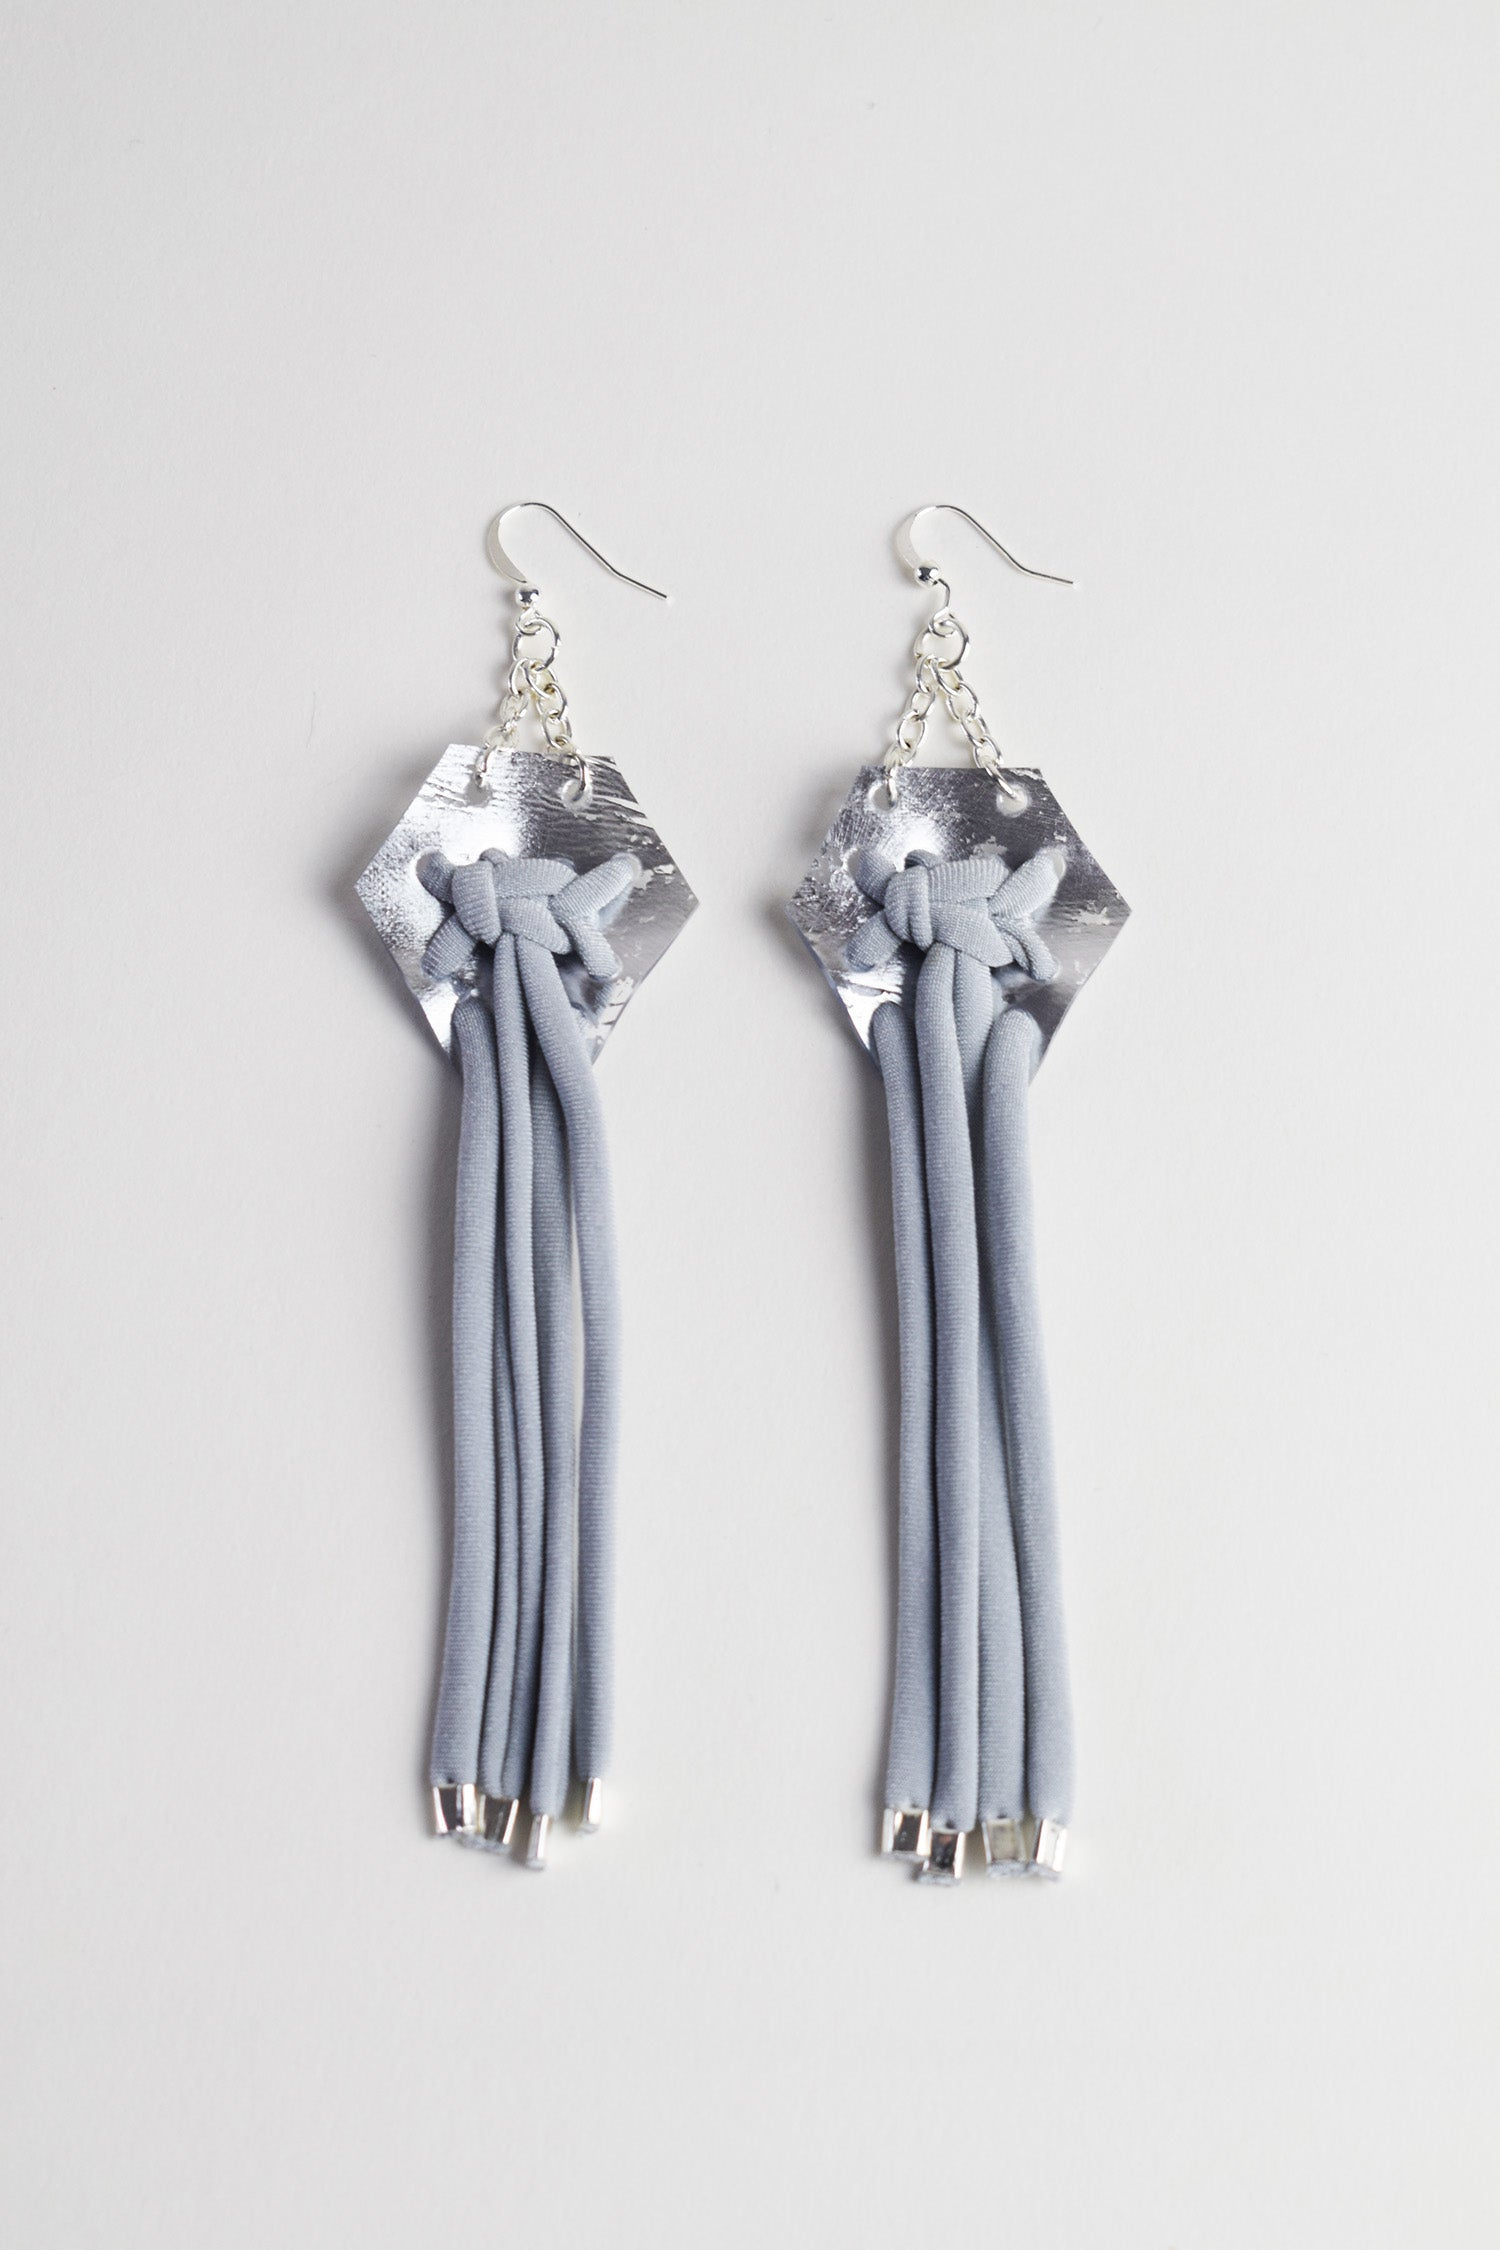 DIAMOND MACRAMÉ EARRINGS